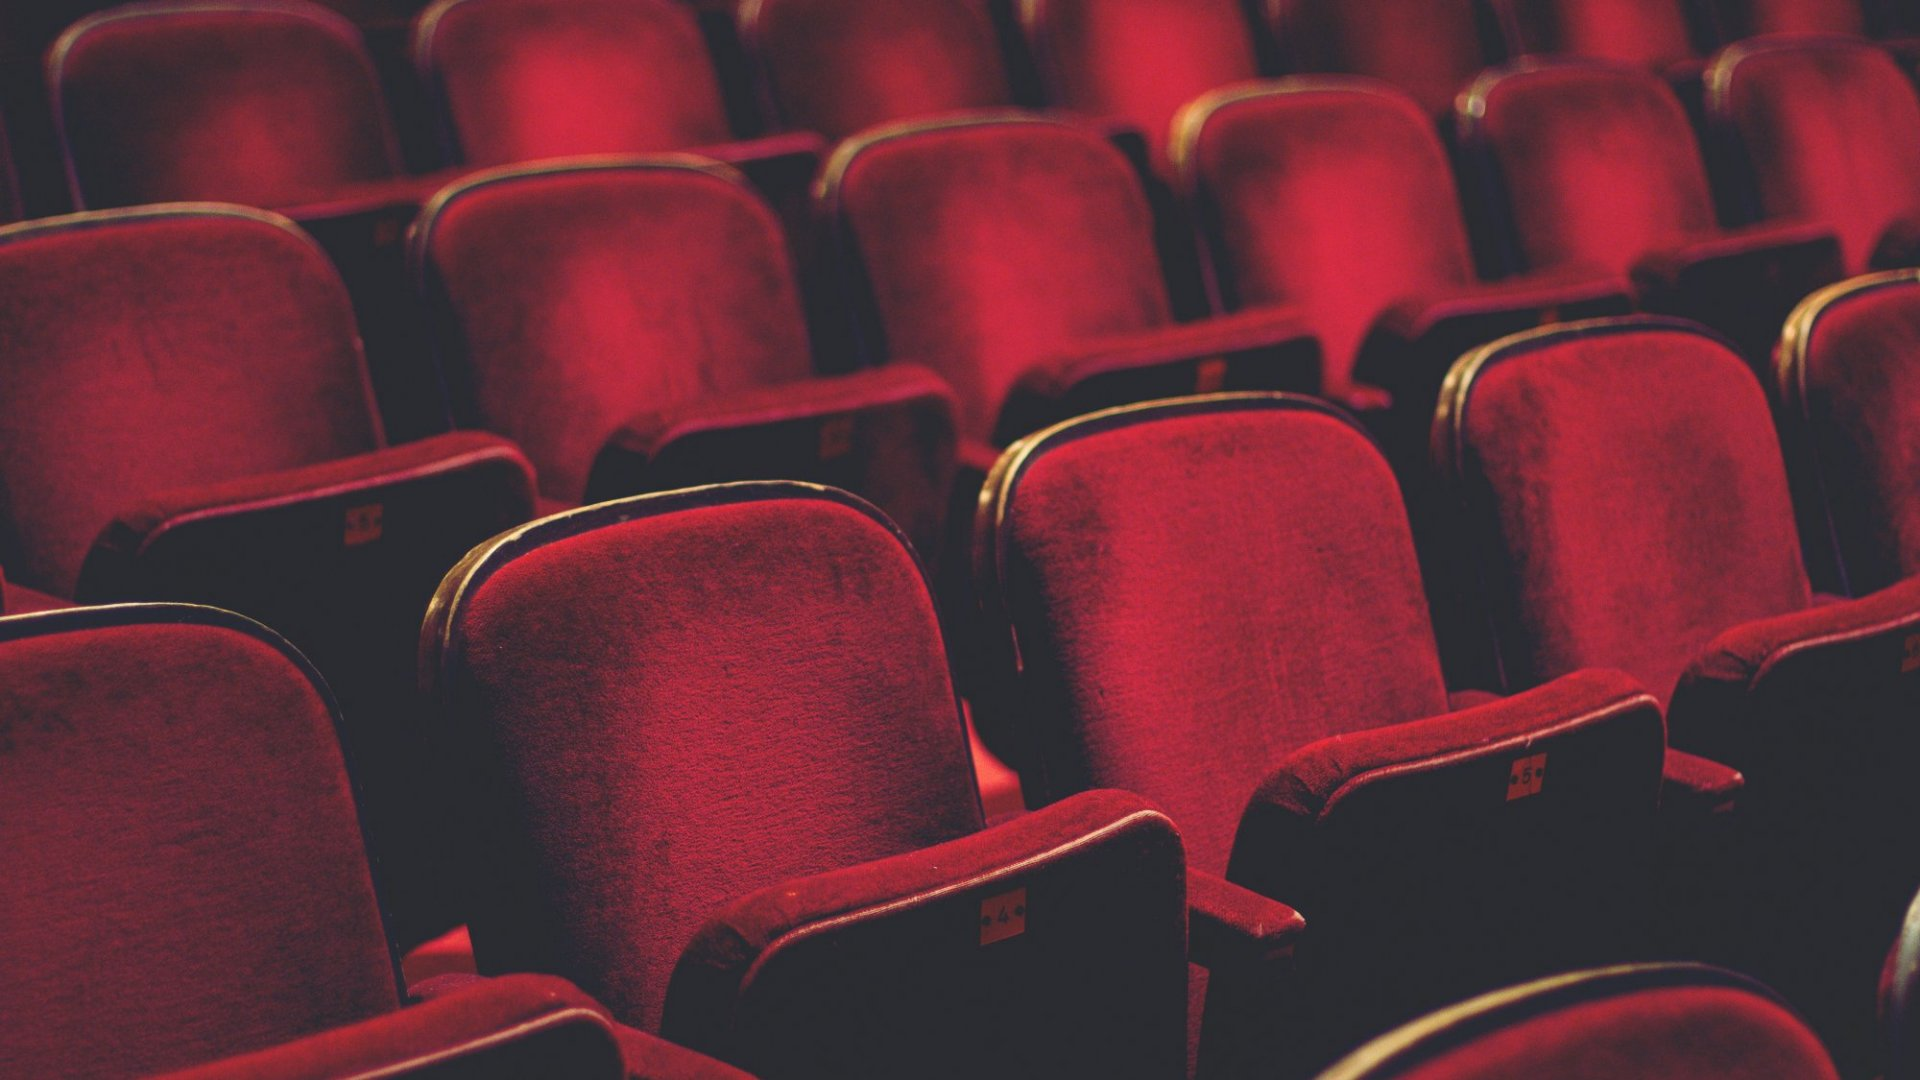 How Unconscious Bias Led a Movie Theater to Kick out 100+ Disabled Children